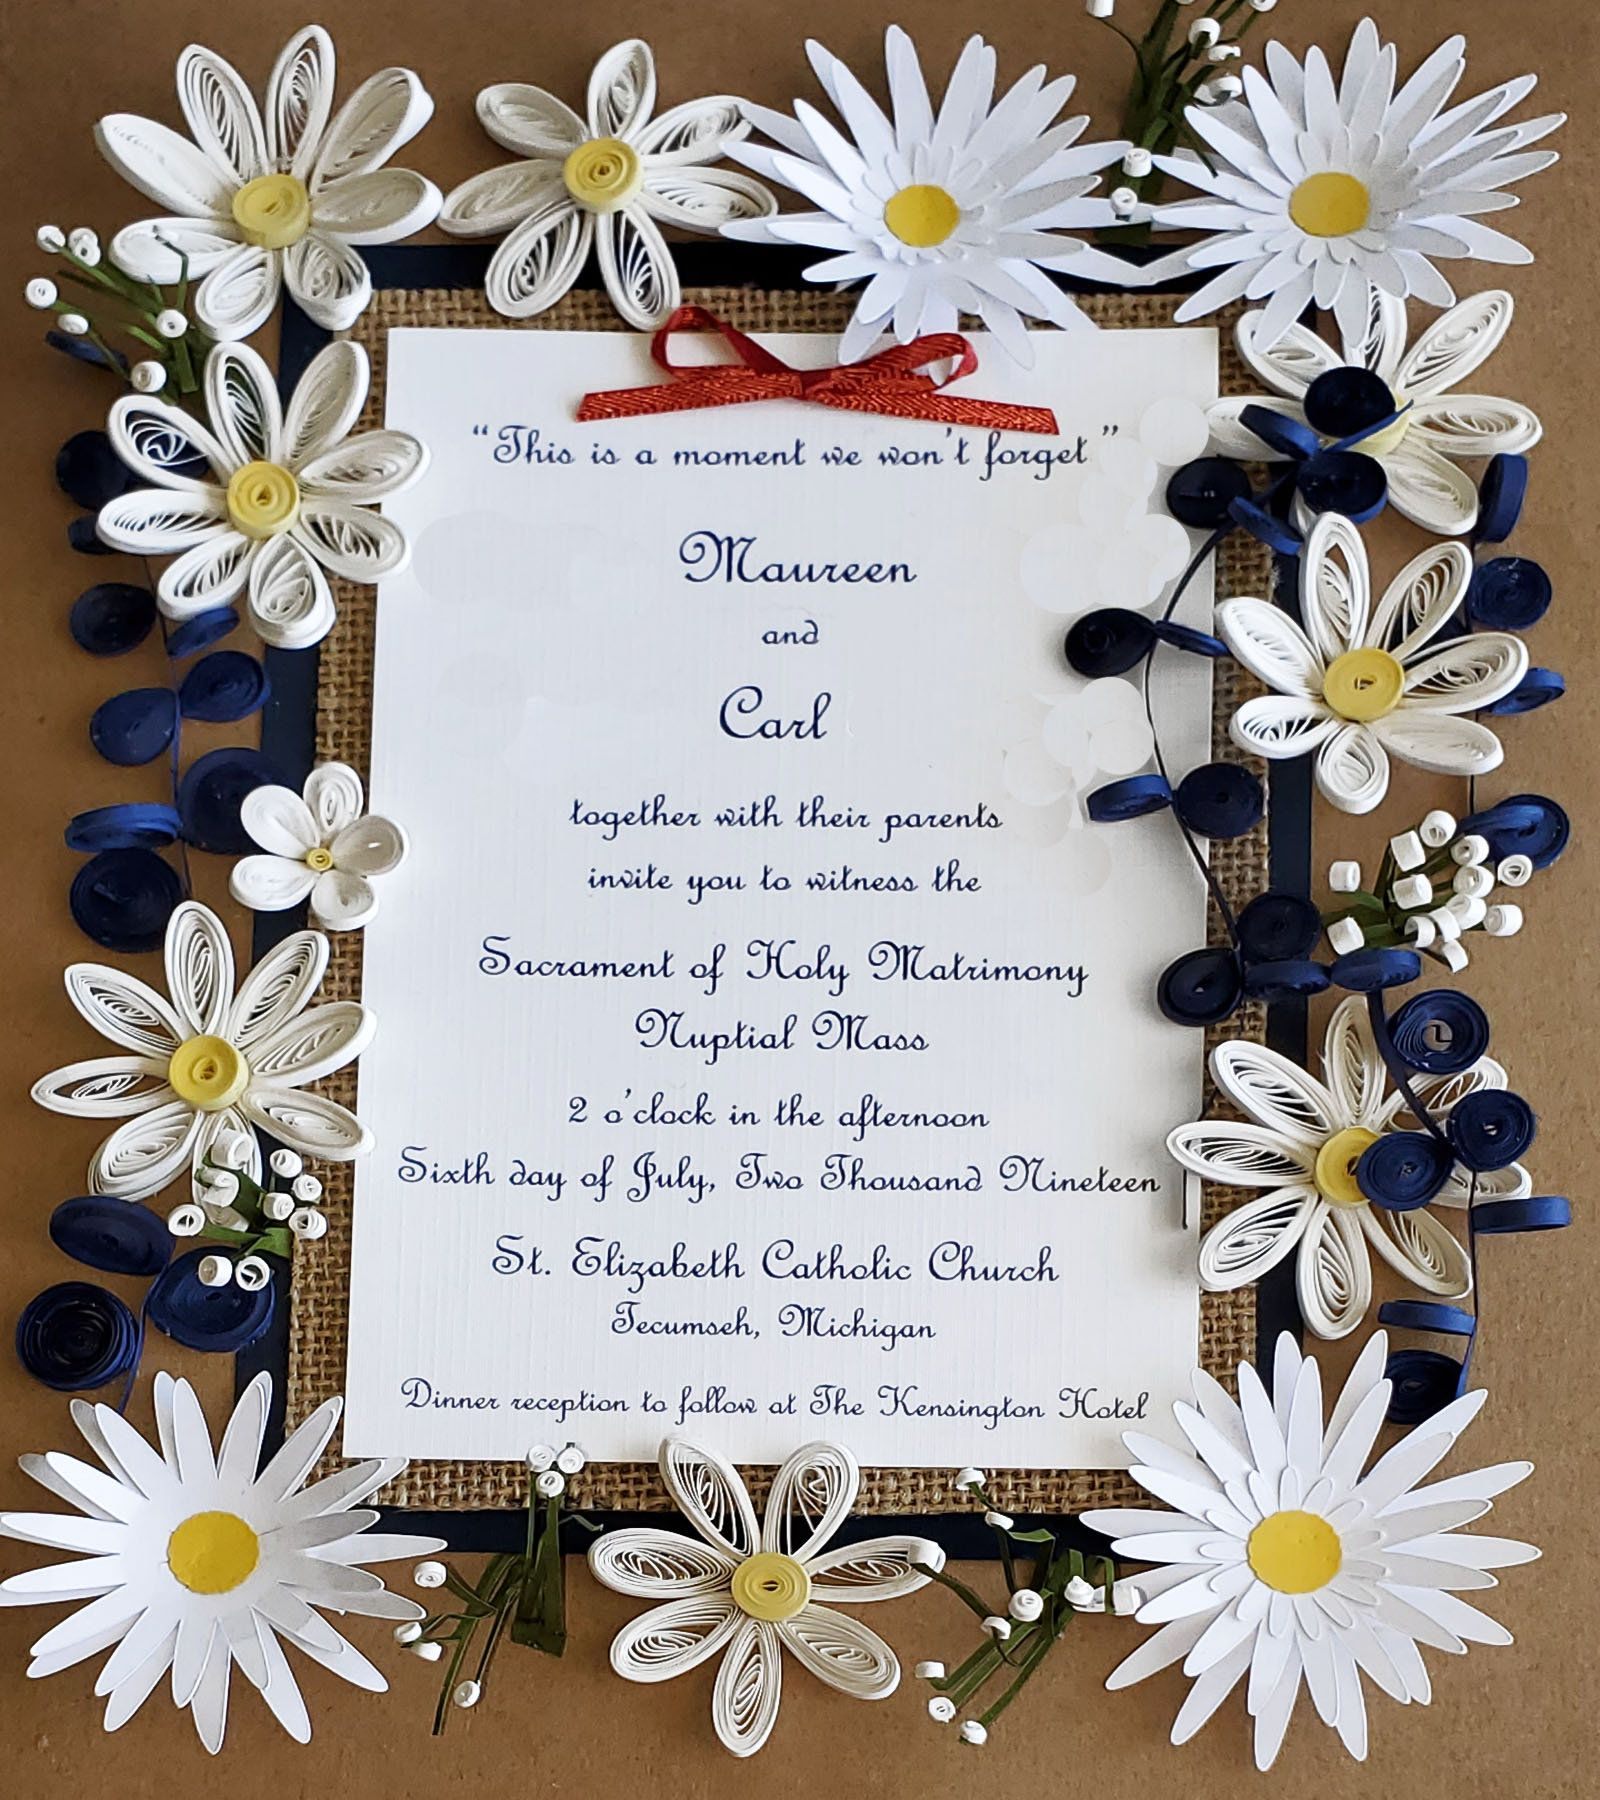 Keepsake Wedding Gifts: Daisy Themed Wedding Invitation Keepsake Gift